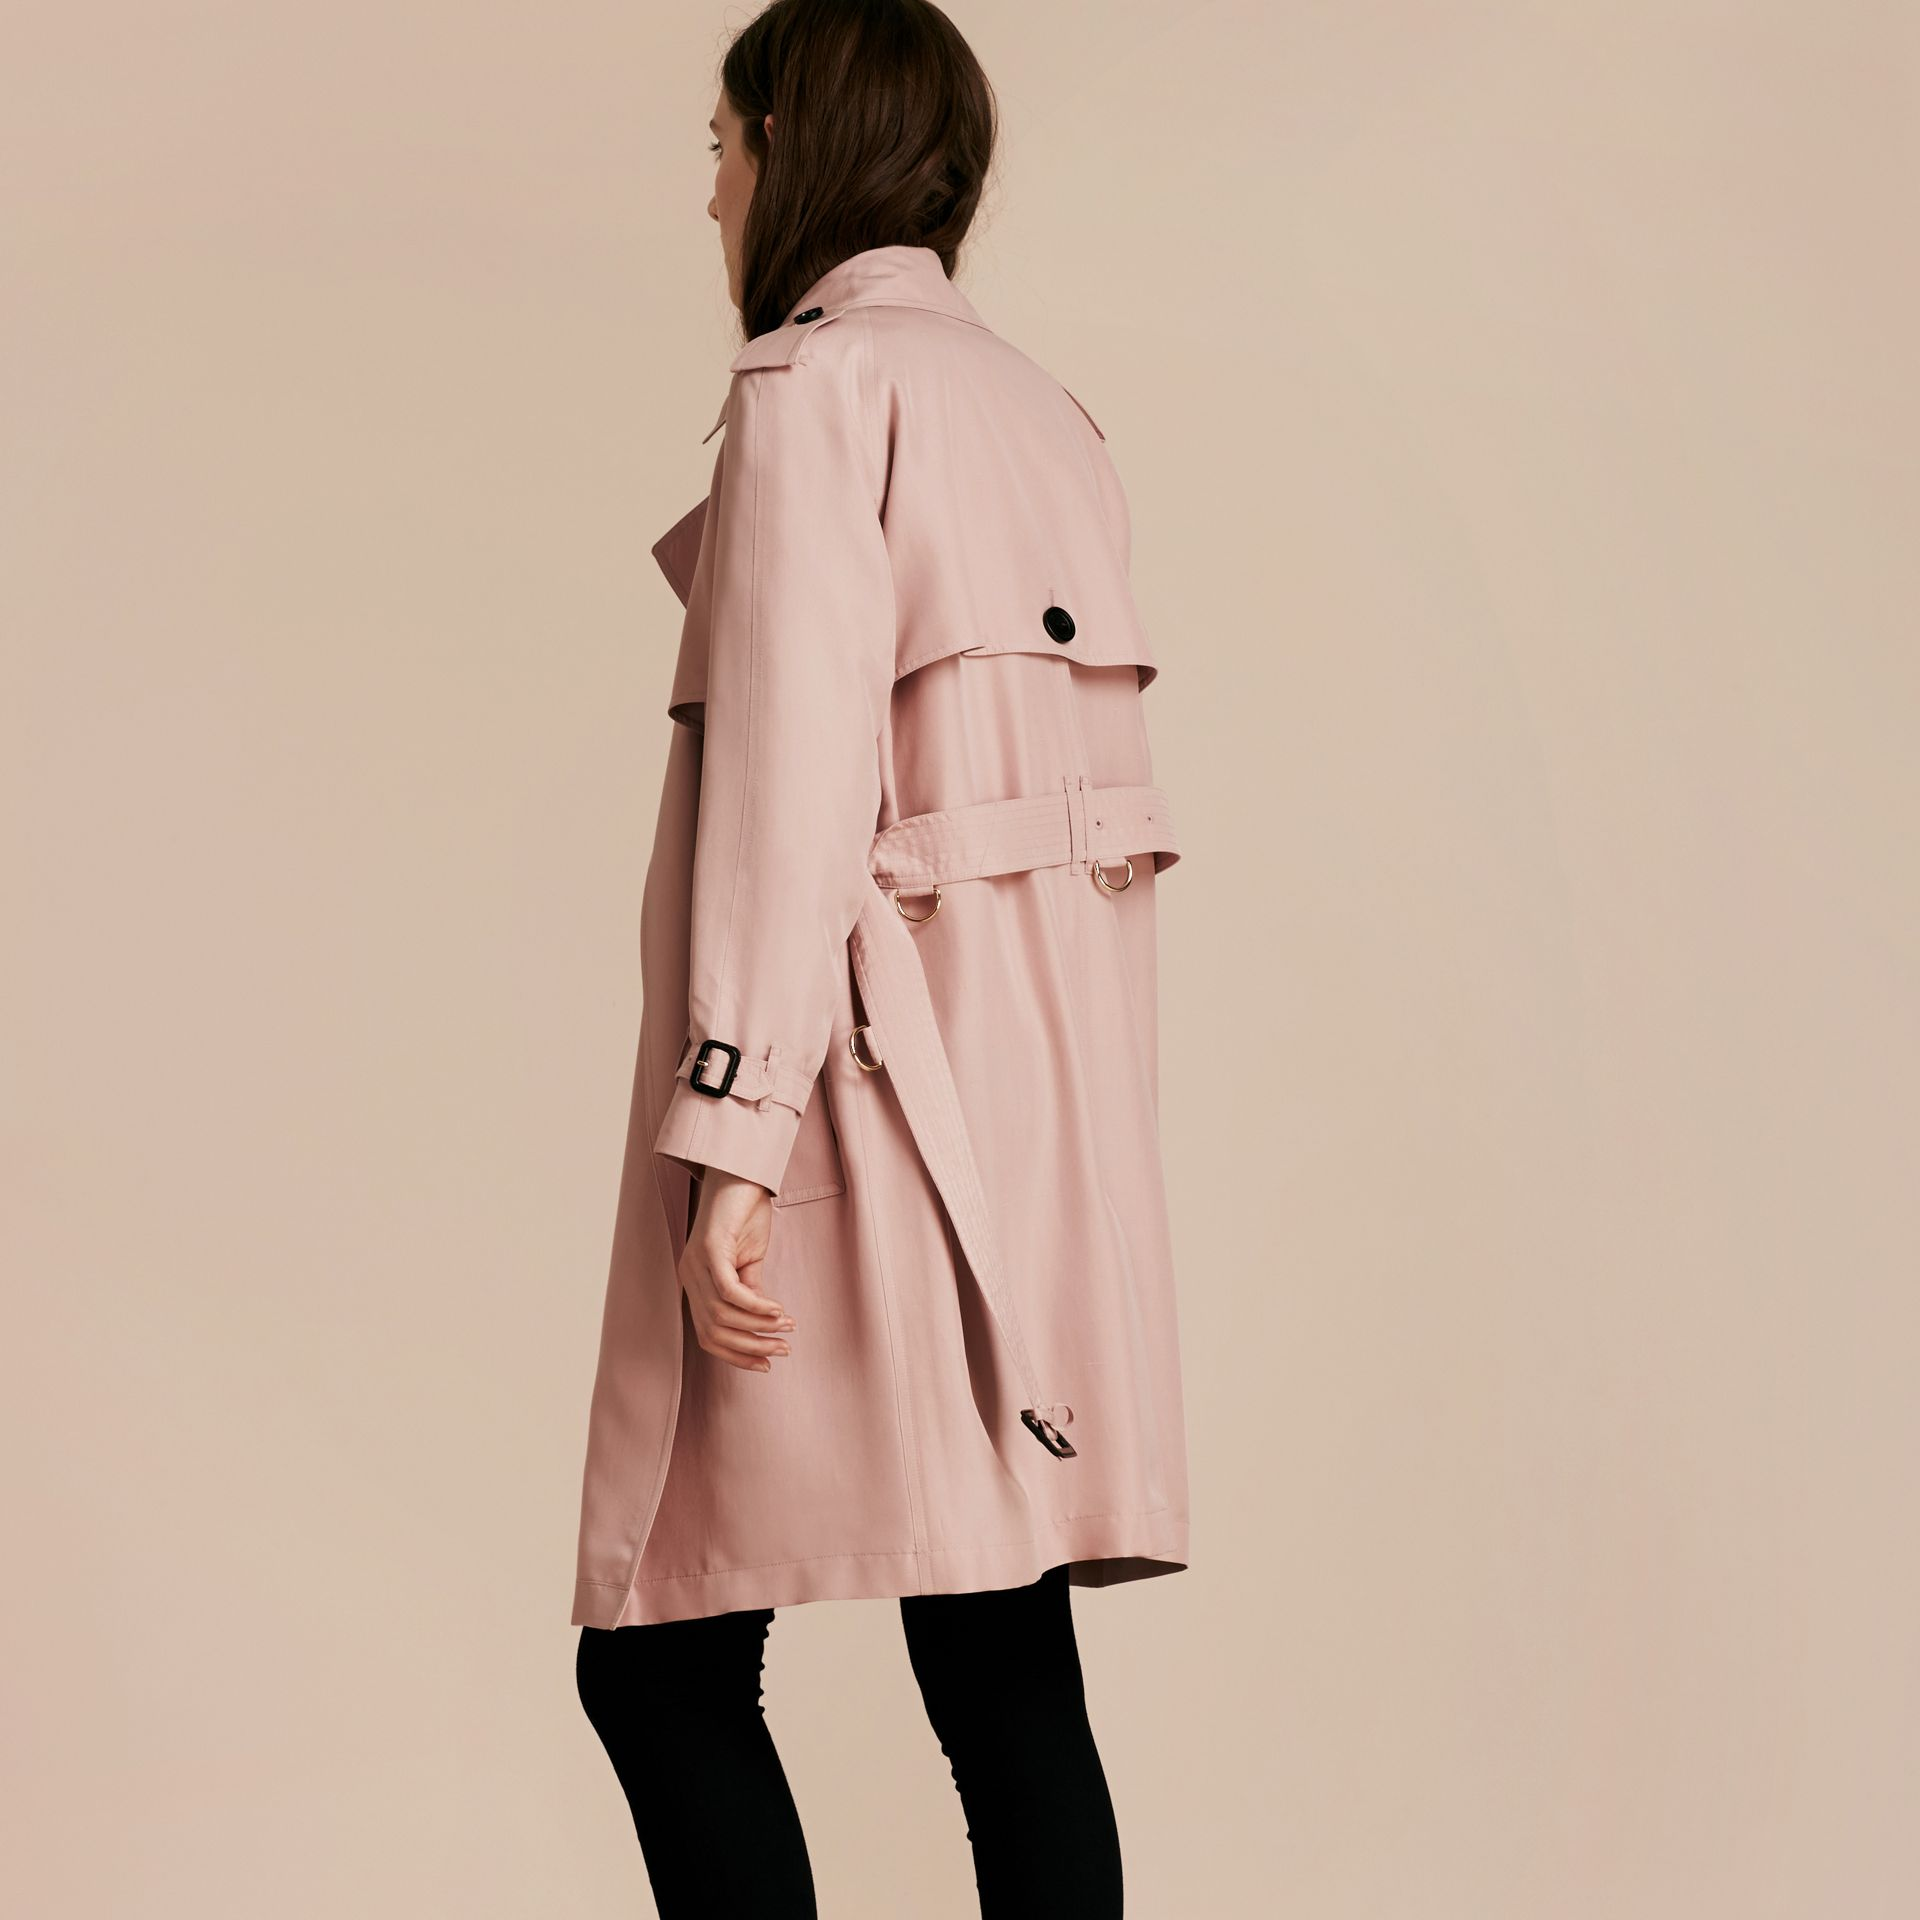 Rose craie Trench-coat portefeuille léger en soie flammée - photo de la galerie 3